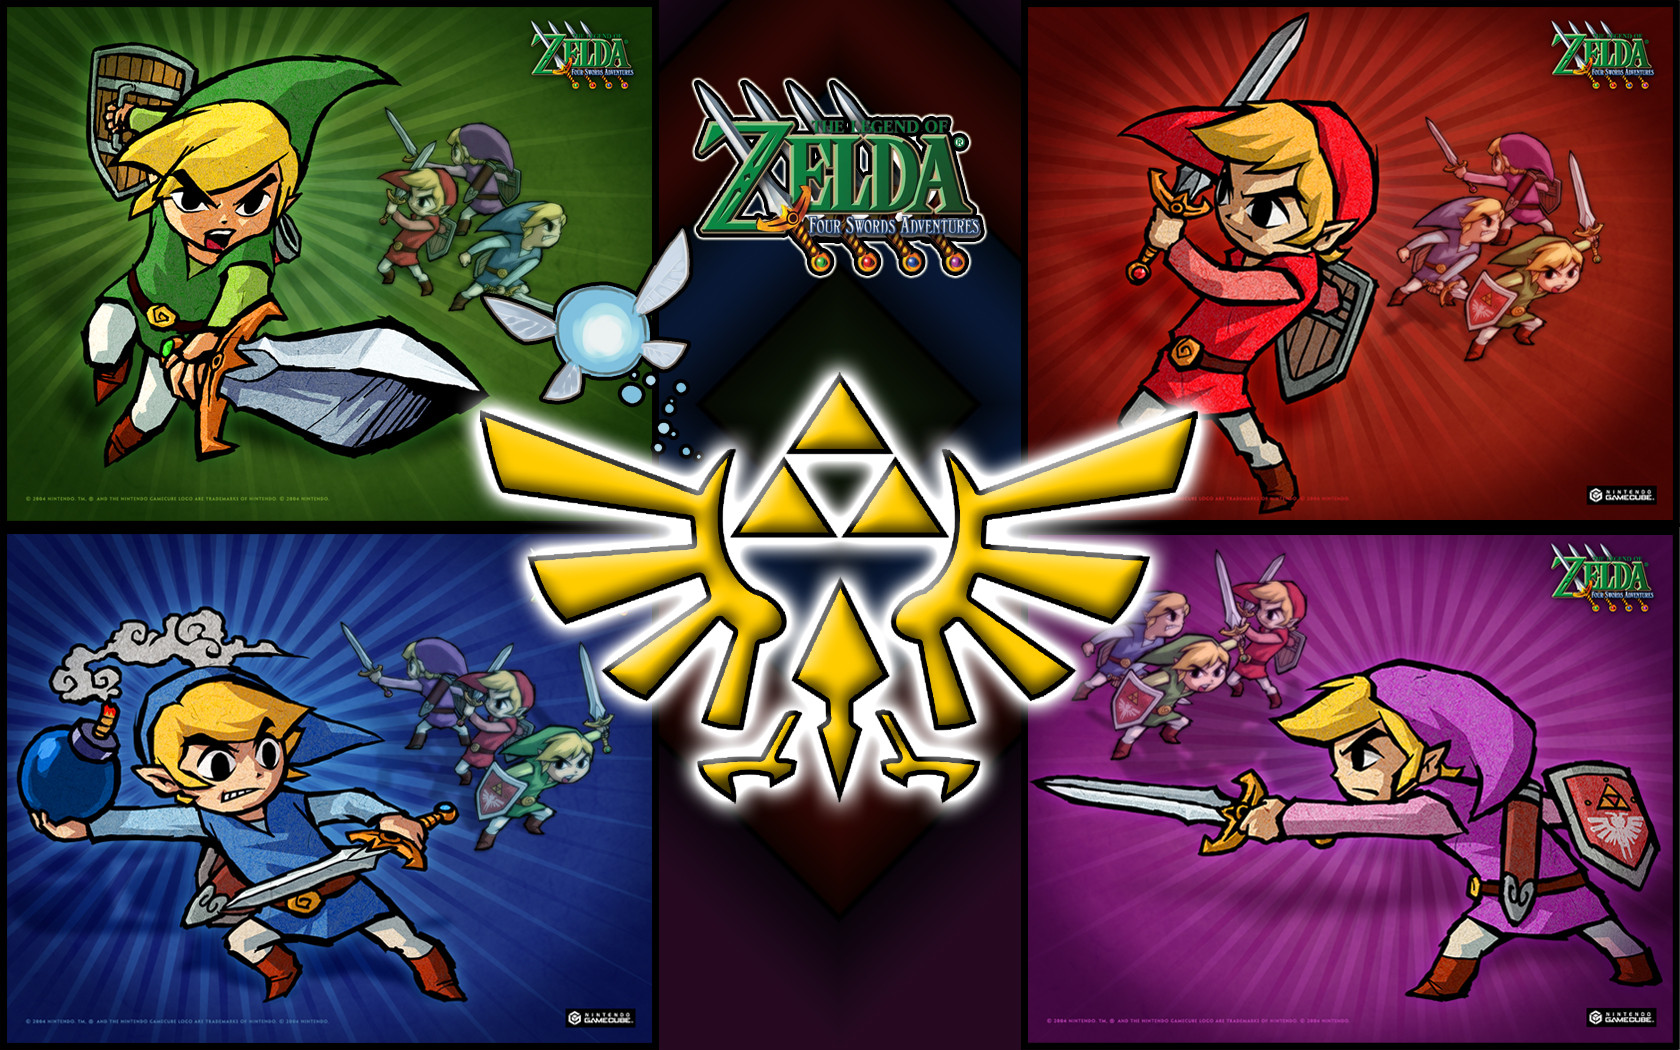 Bildergebnis für the legend of zelda four swords